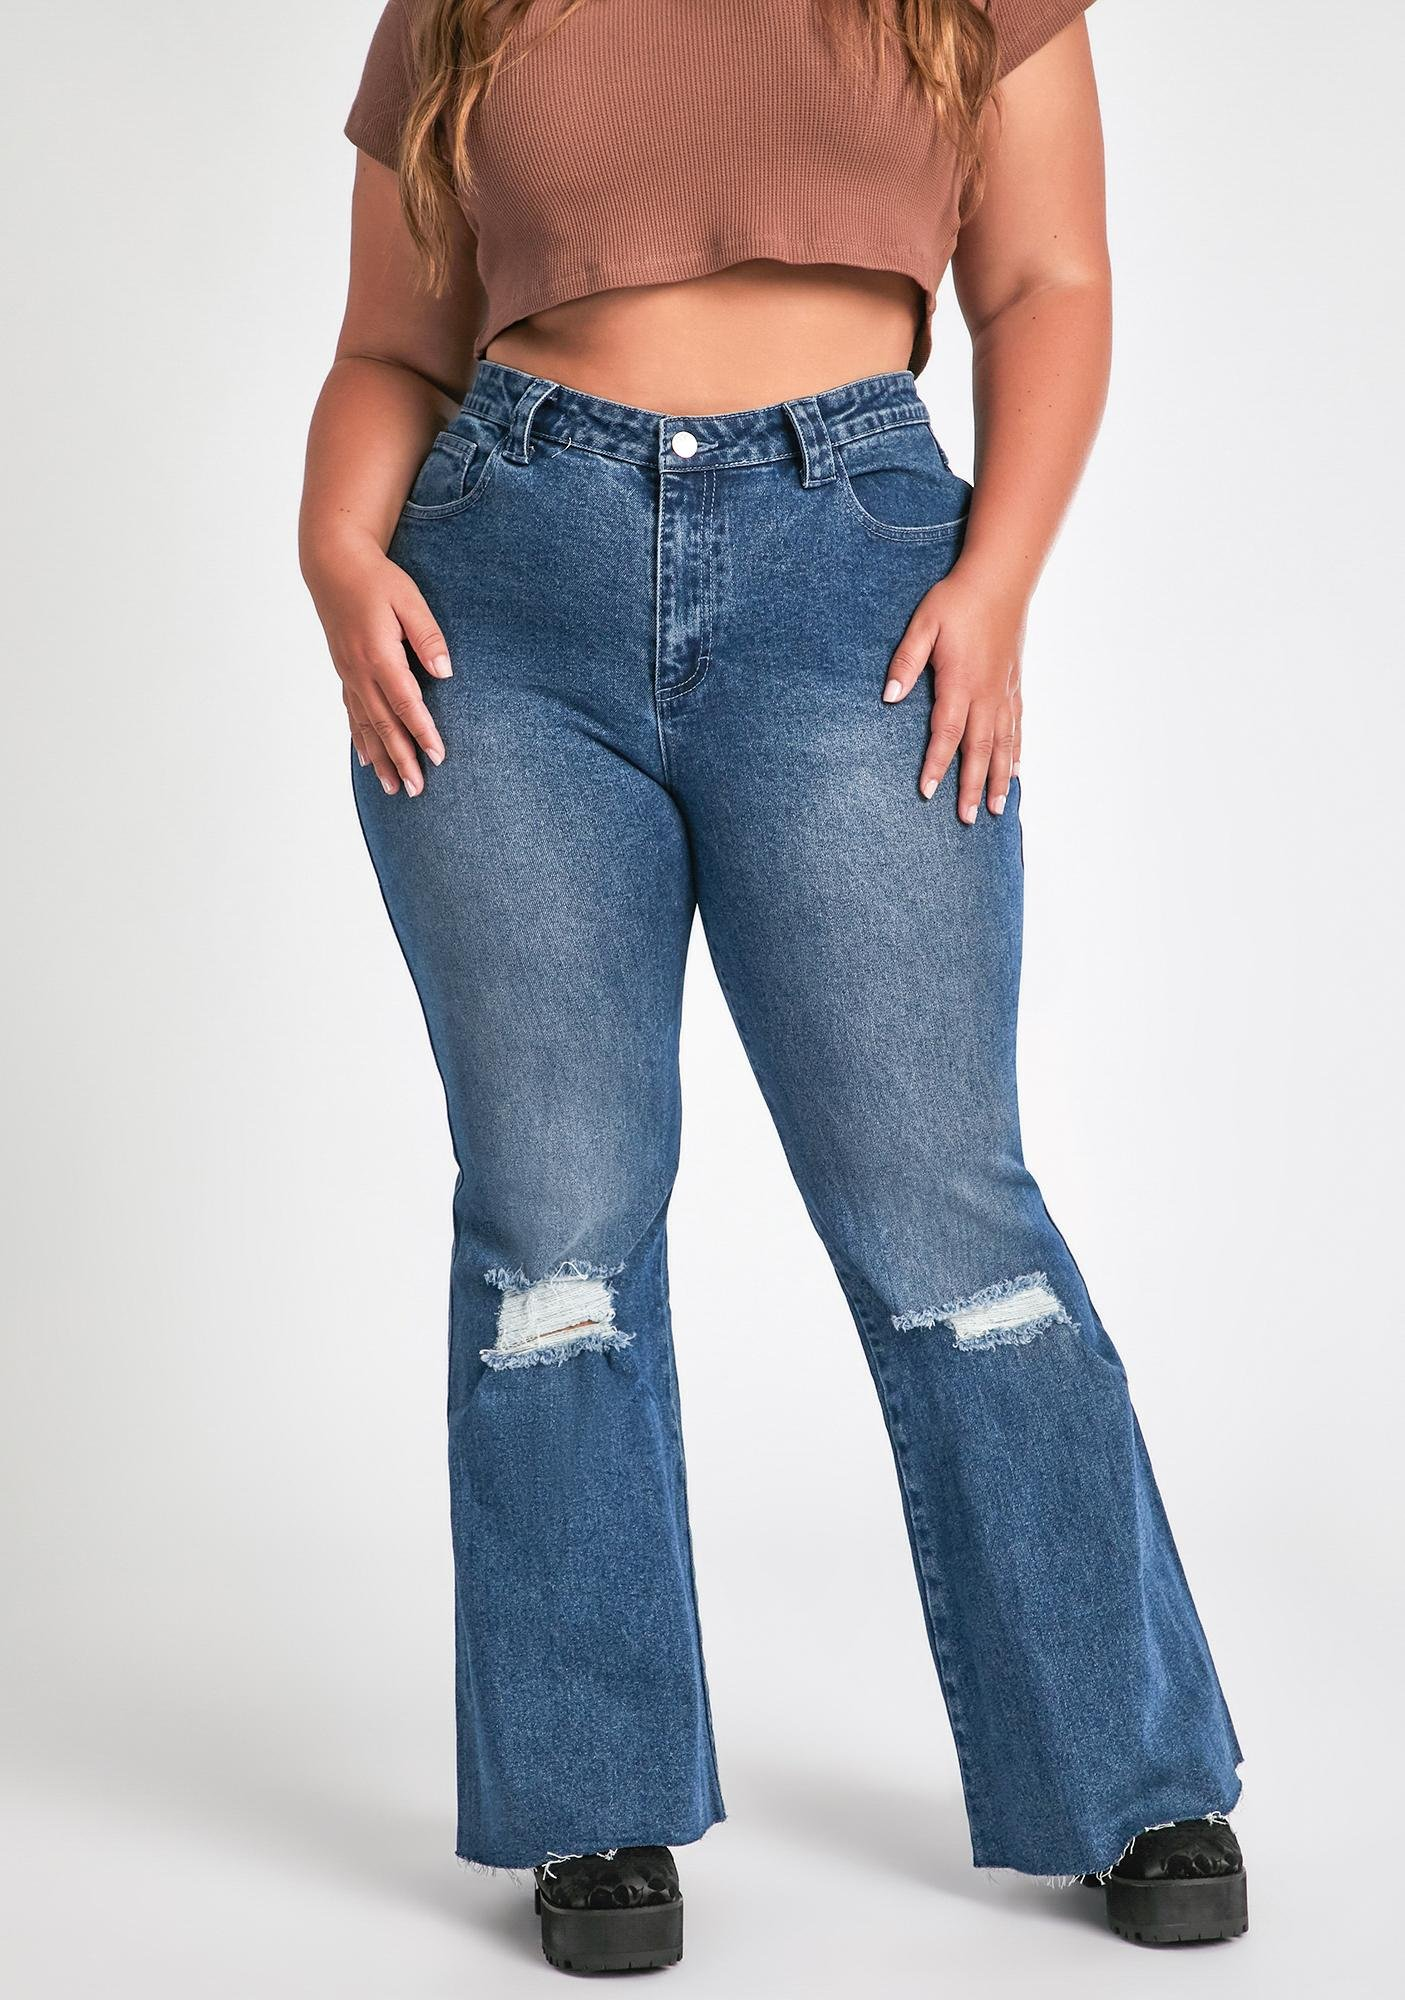 dELiA*s by Dolls Kill She's Little Miss Perfect Jeans